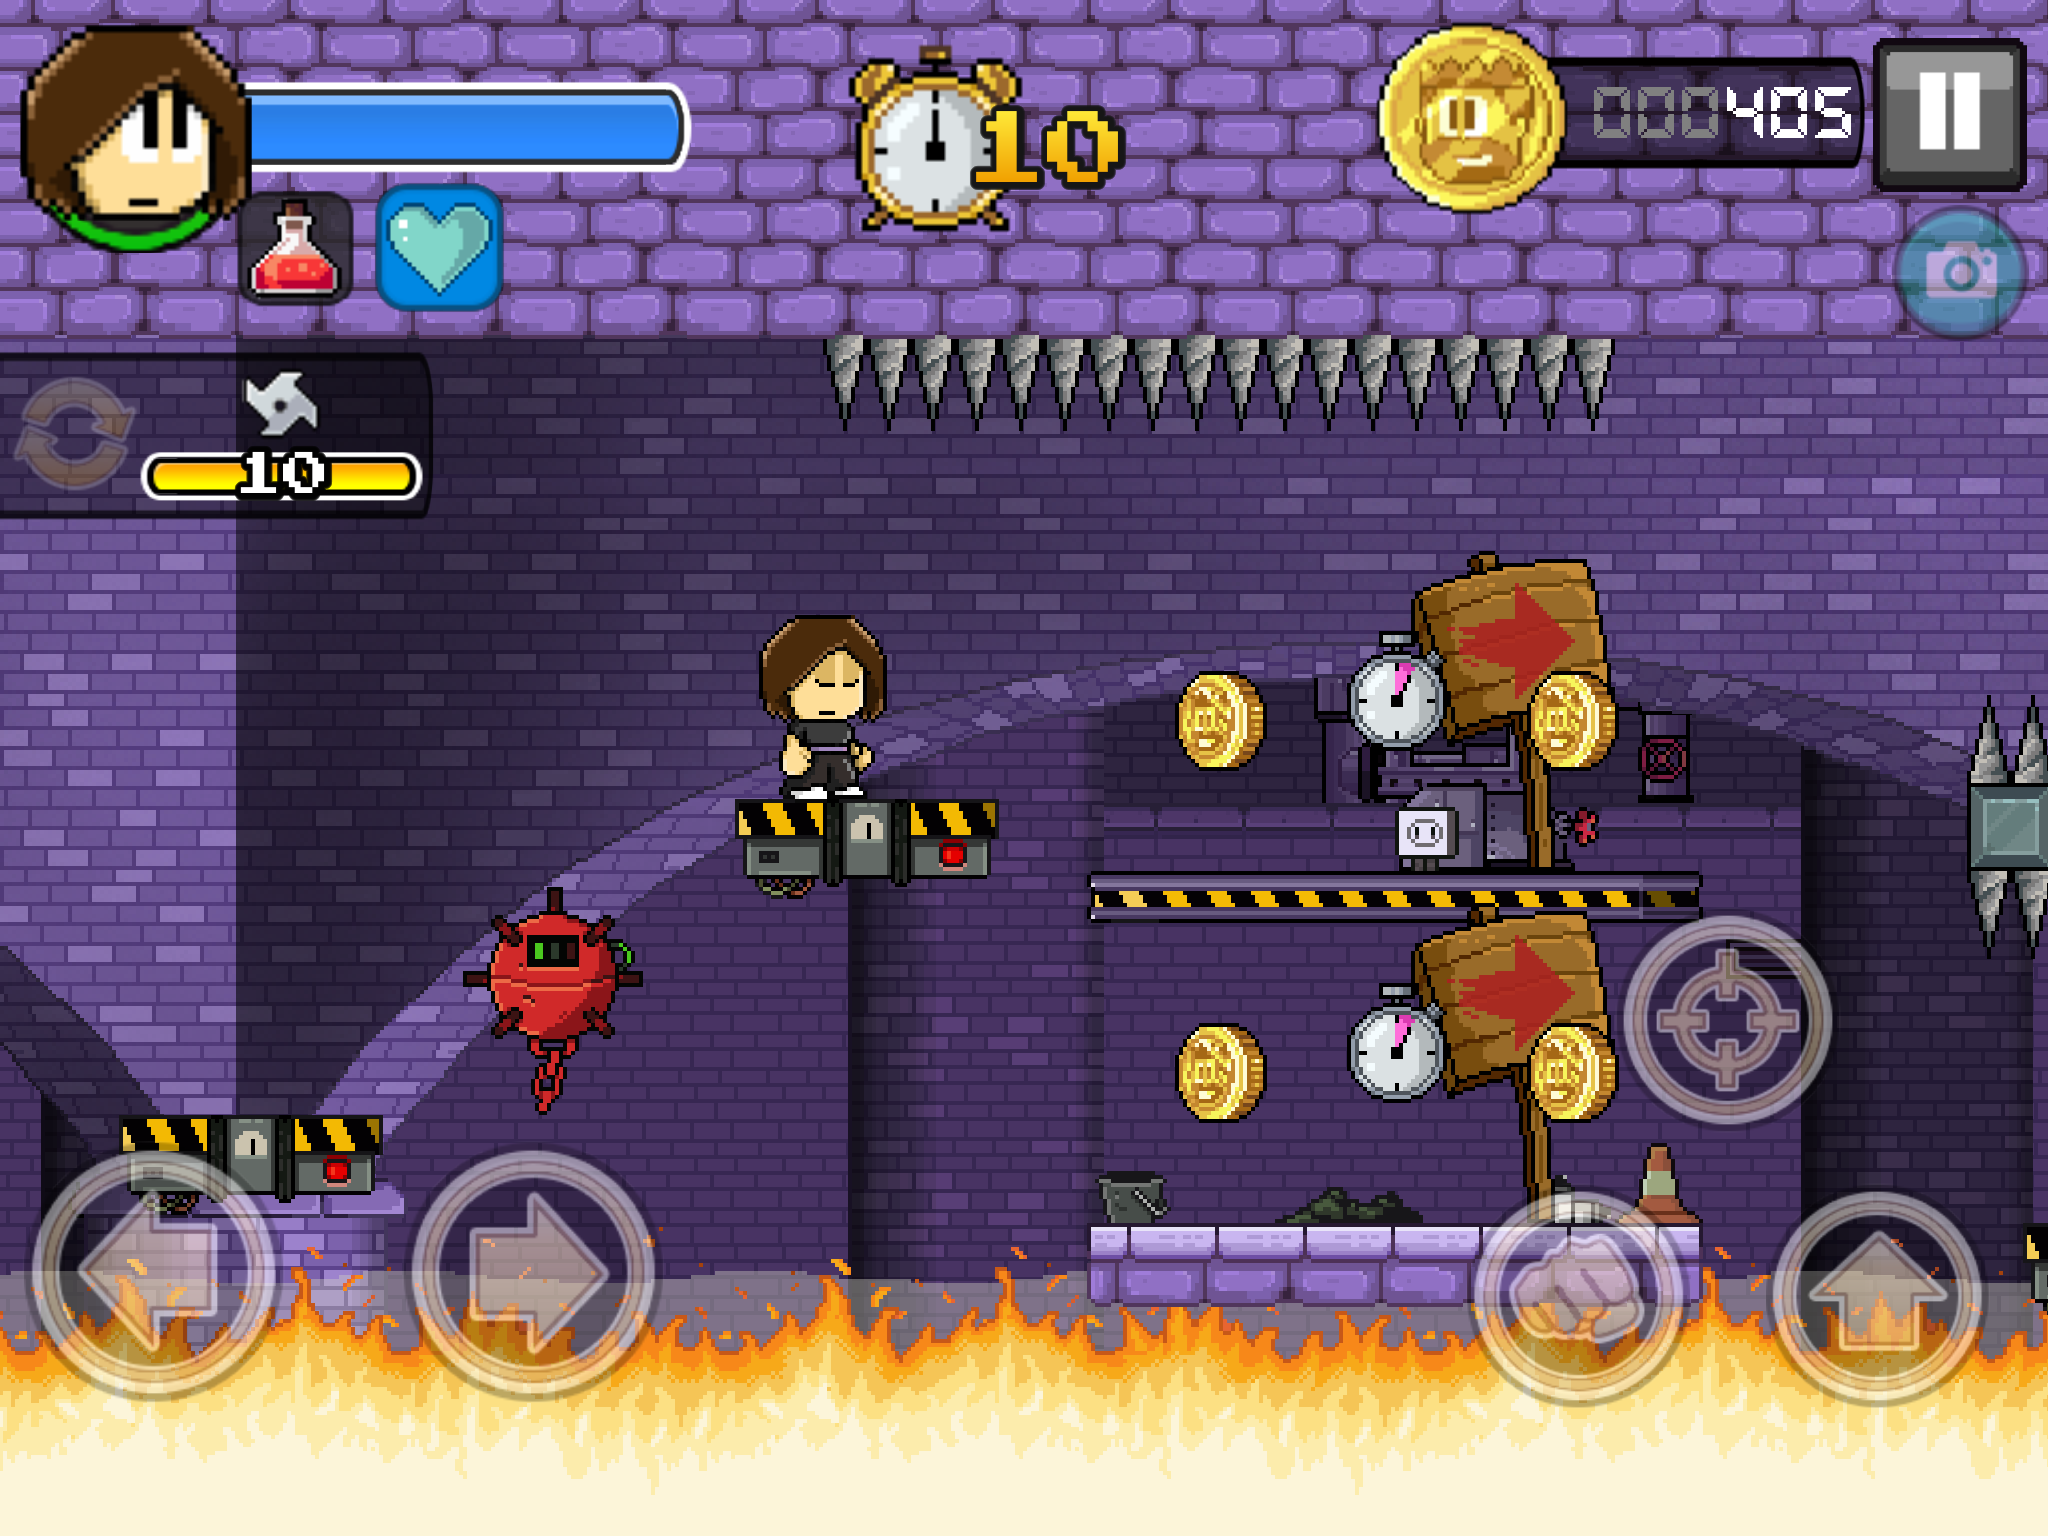 Dan the Man review - A mobile platformer with a retro twang